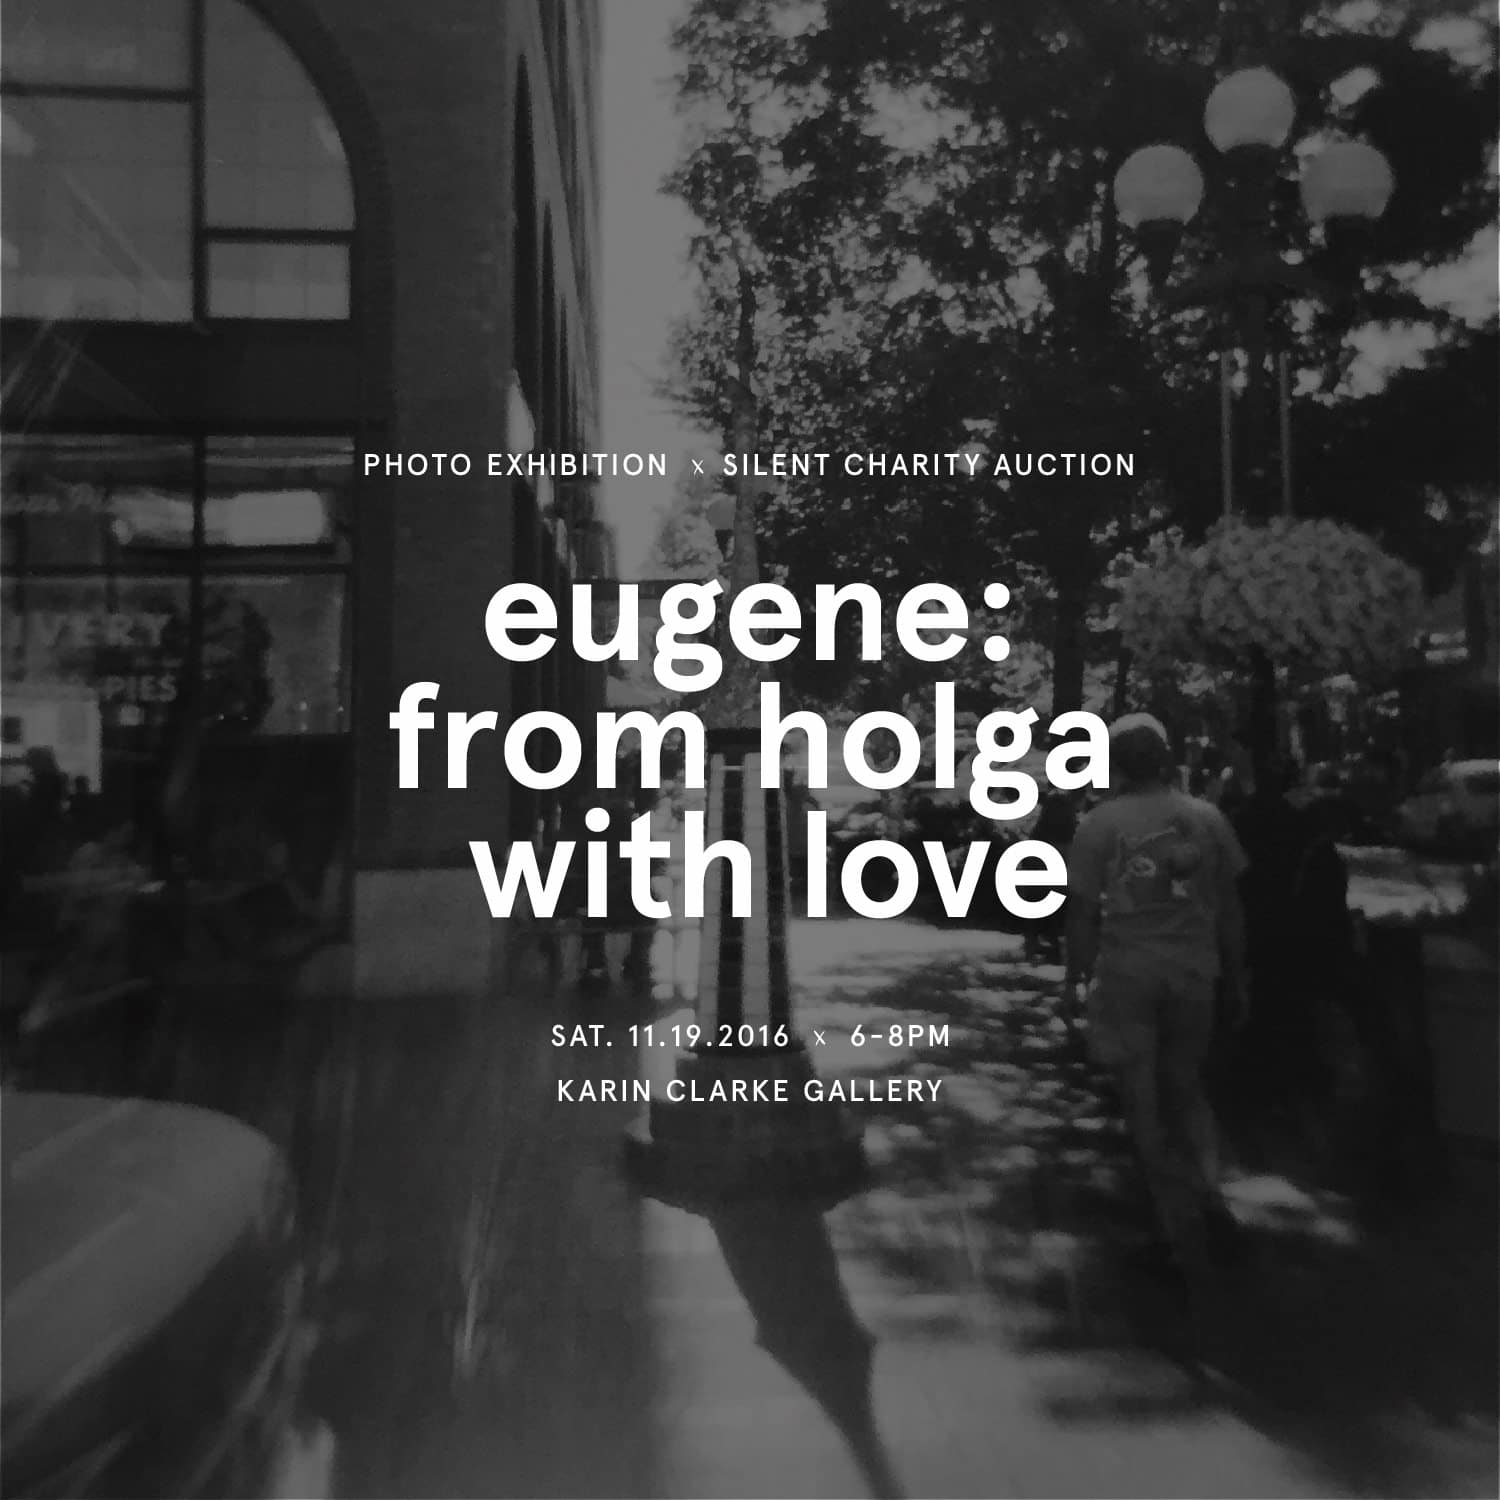 5 Beneficiaries Announced for #EugeneHolga Event